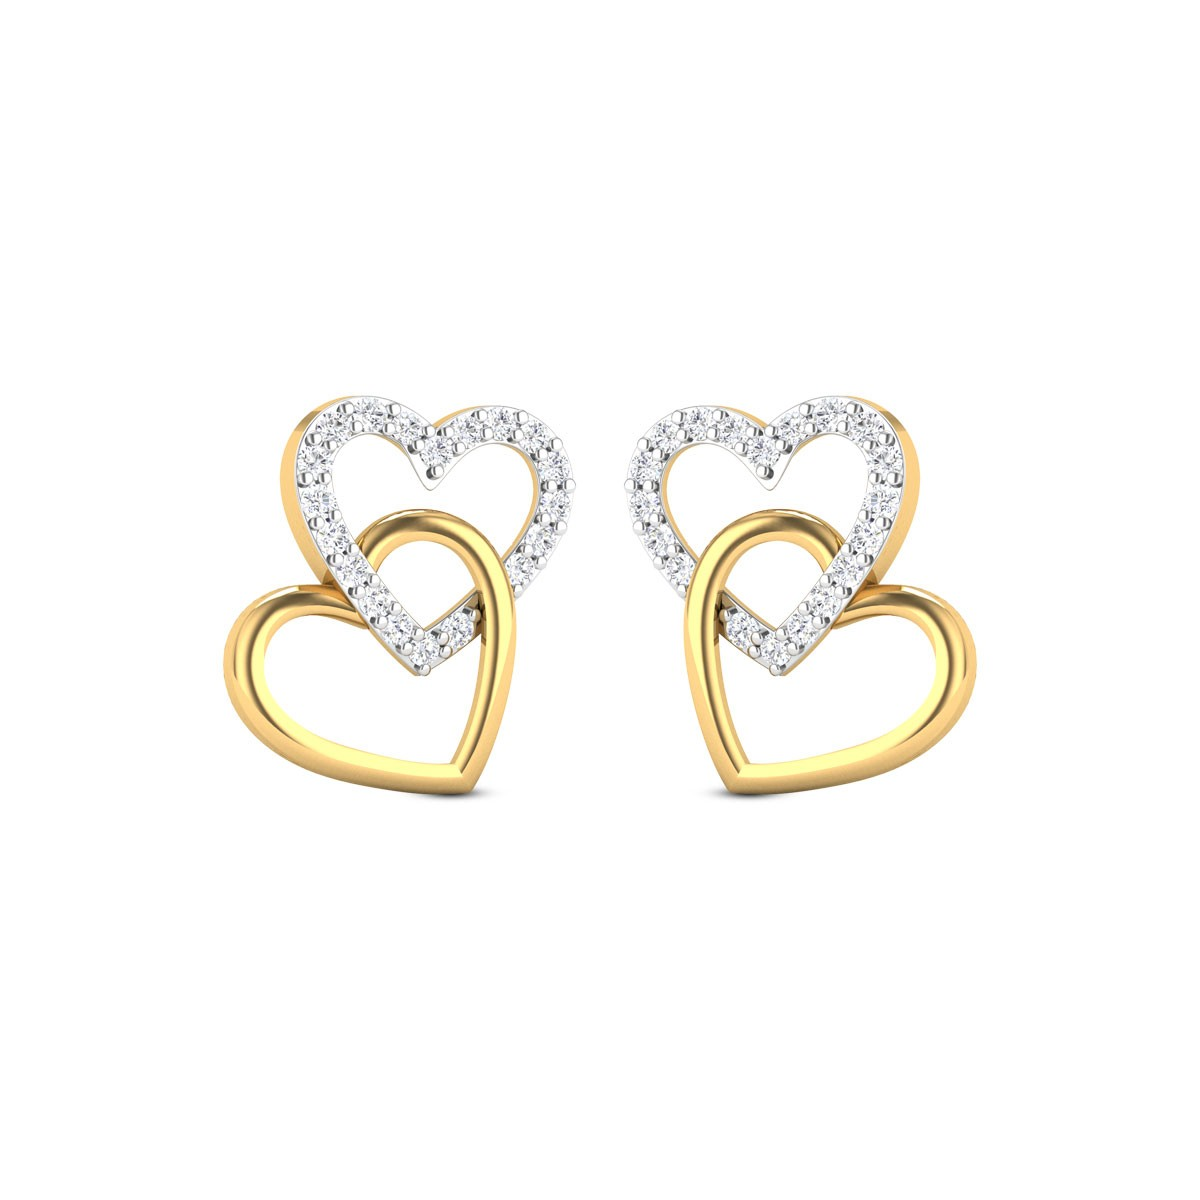 Soha Diamond Earrings